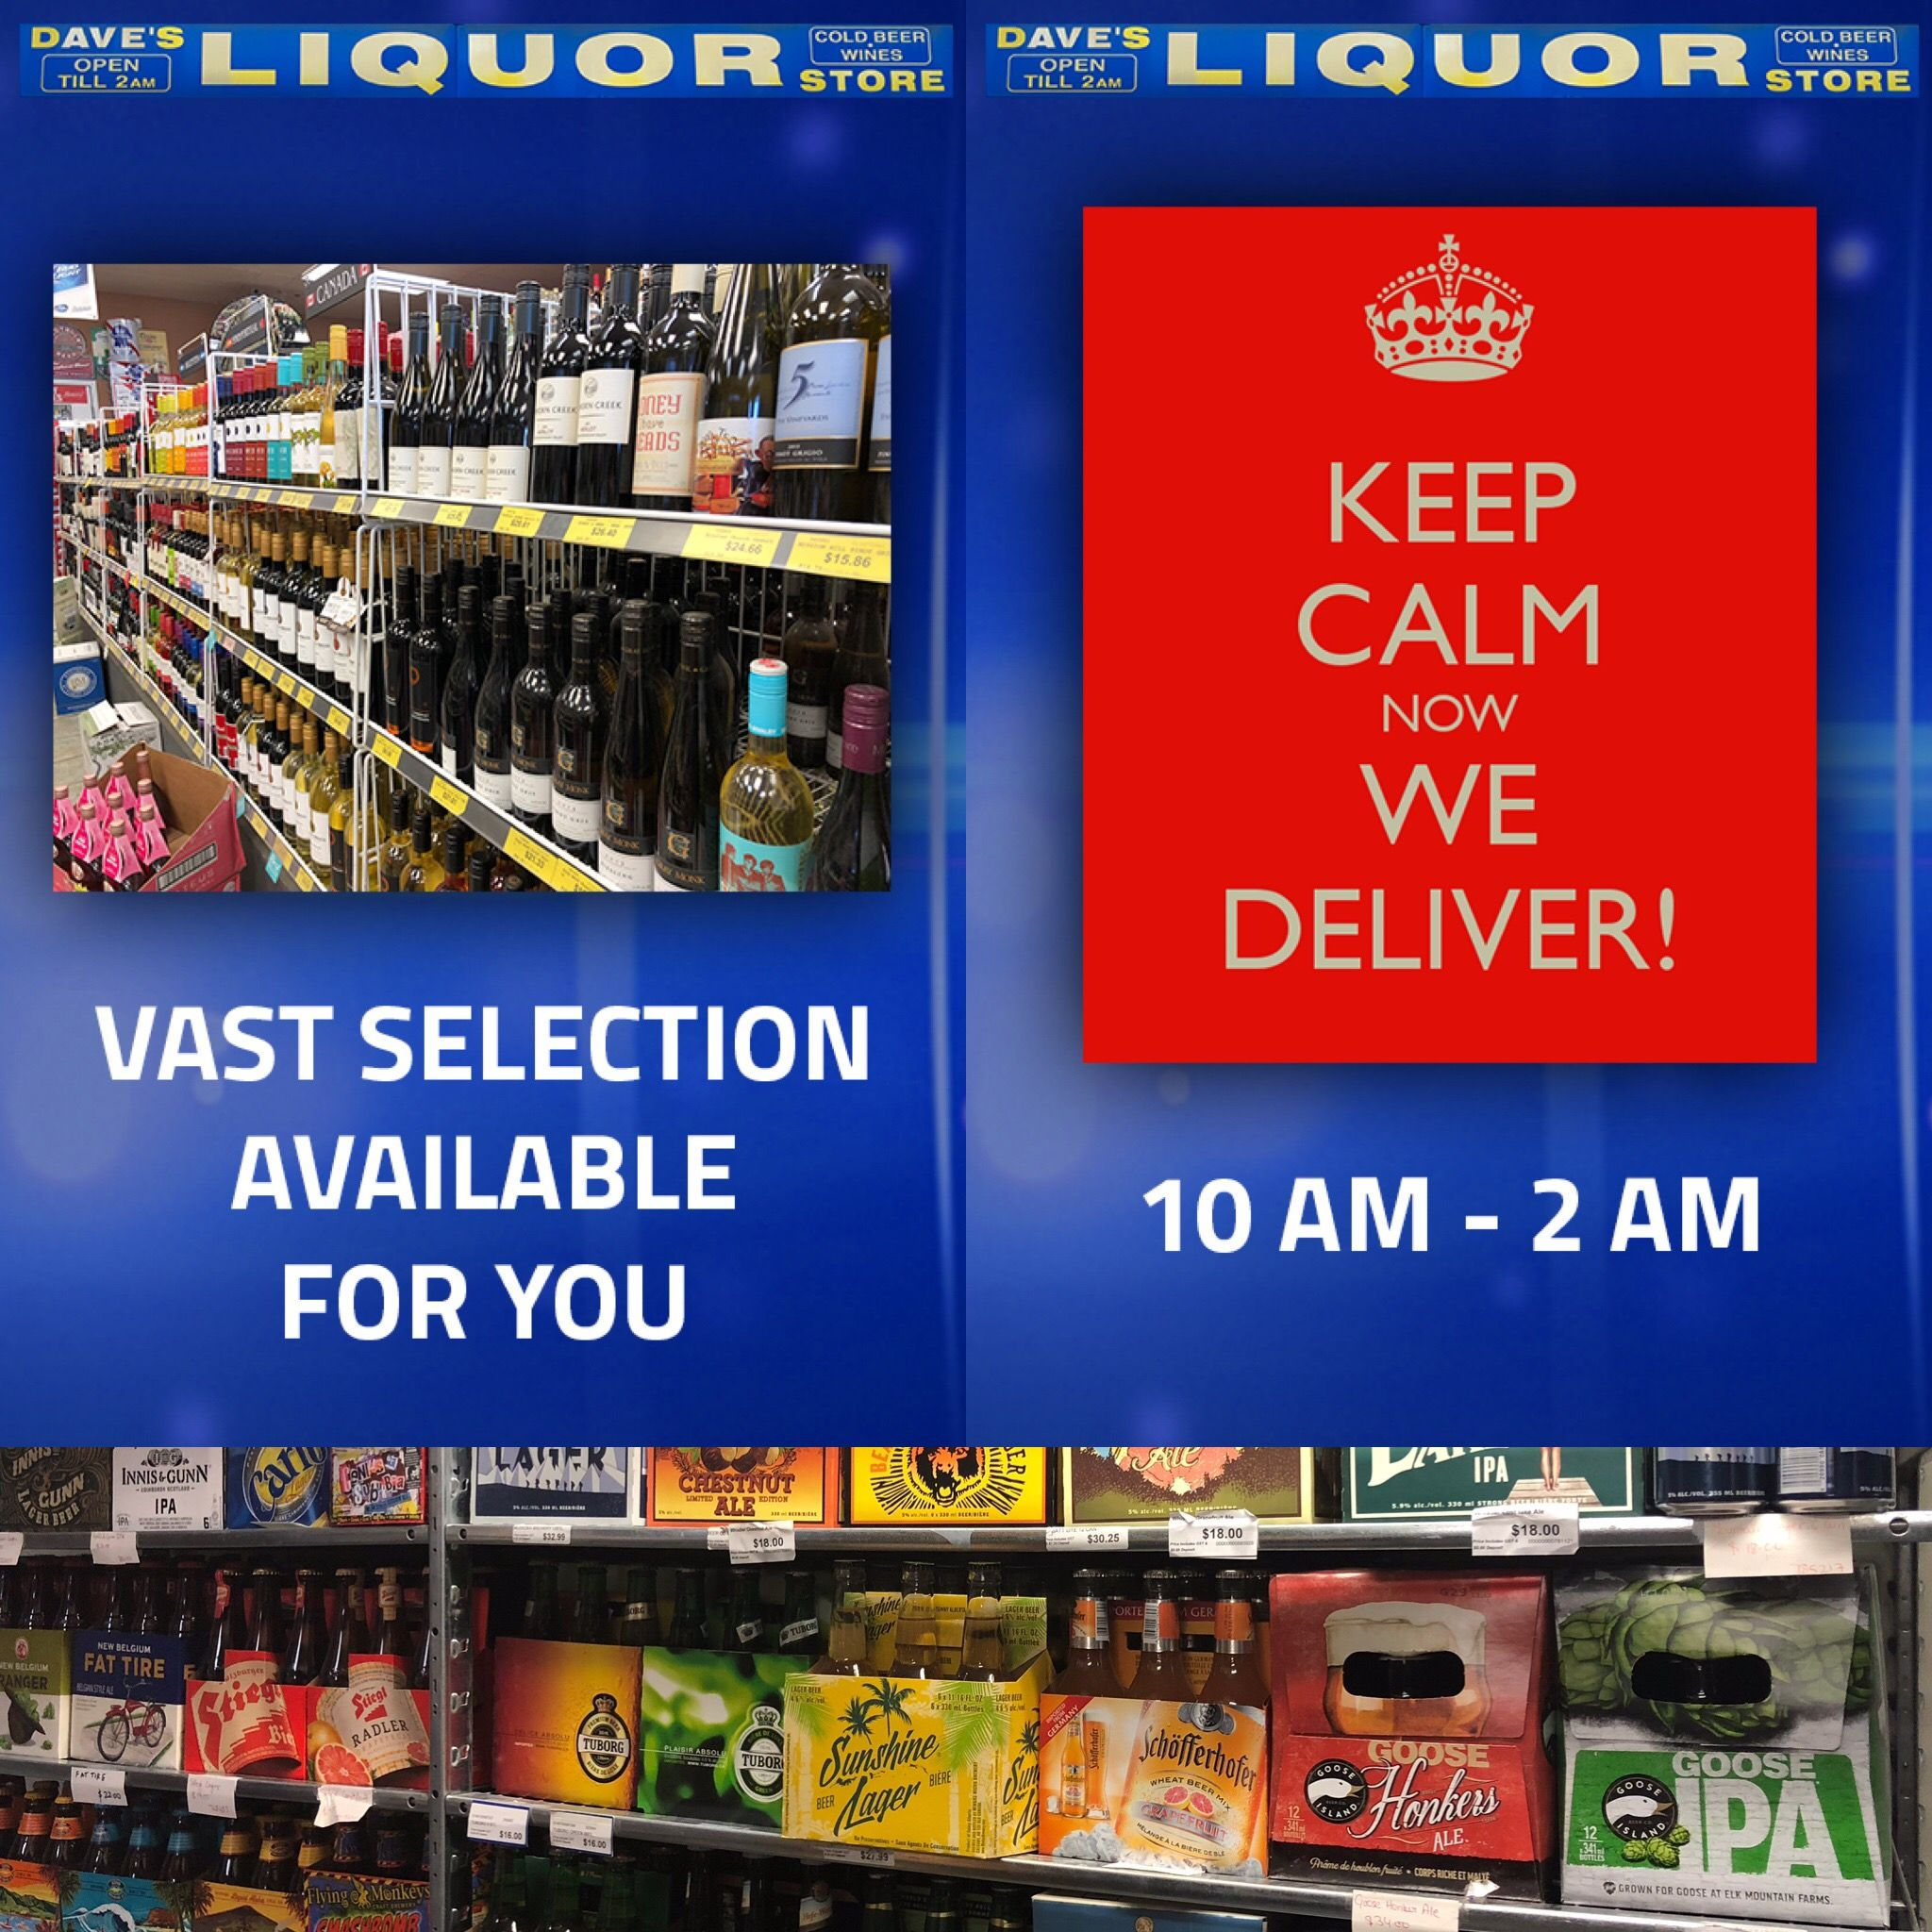 Calgary Dave S Liquor Store Not Only Has A Huge Selection They Also Deliver Davesliquorstore Davesliquor Ibdmedia Ibd Me Liquor Store Ibd Billboard